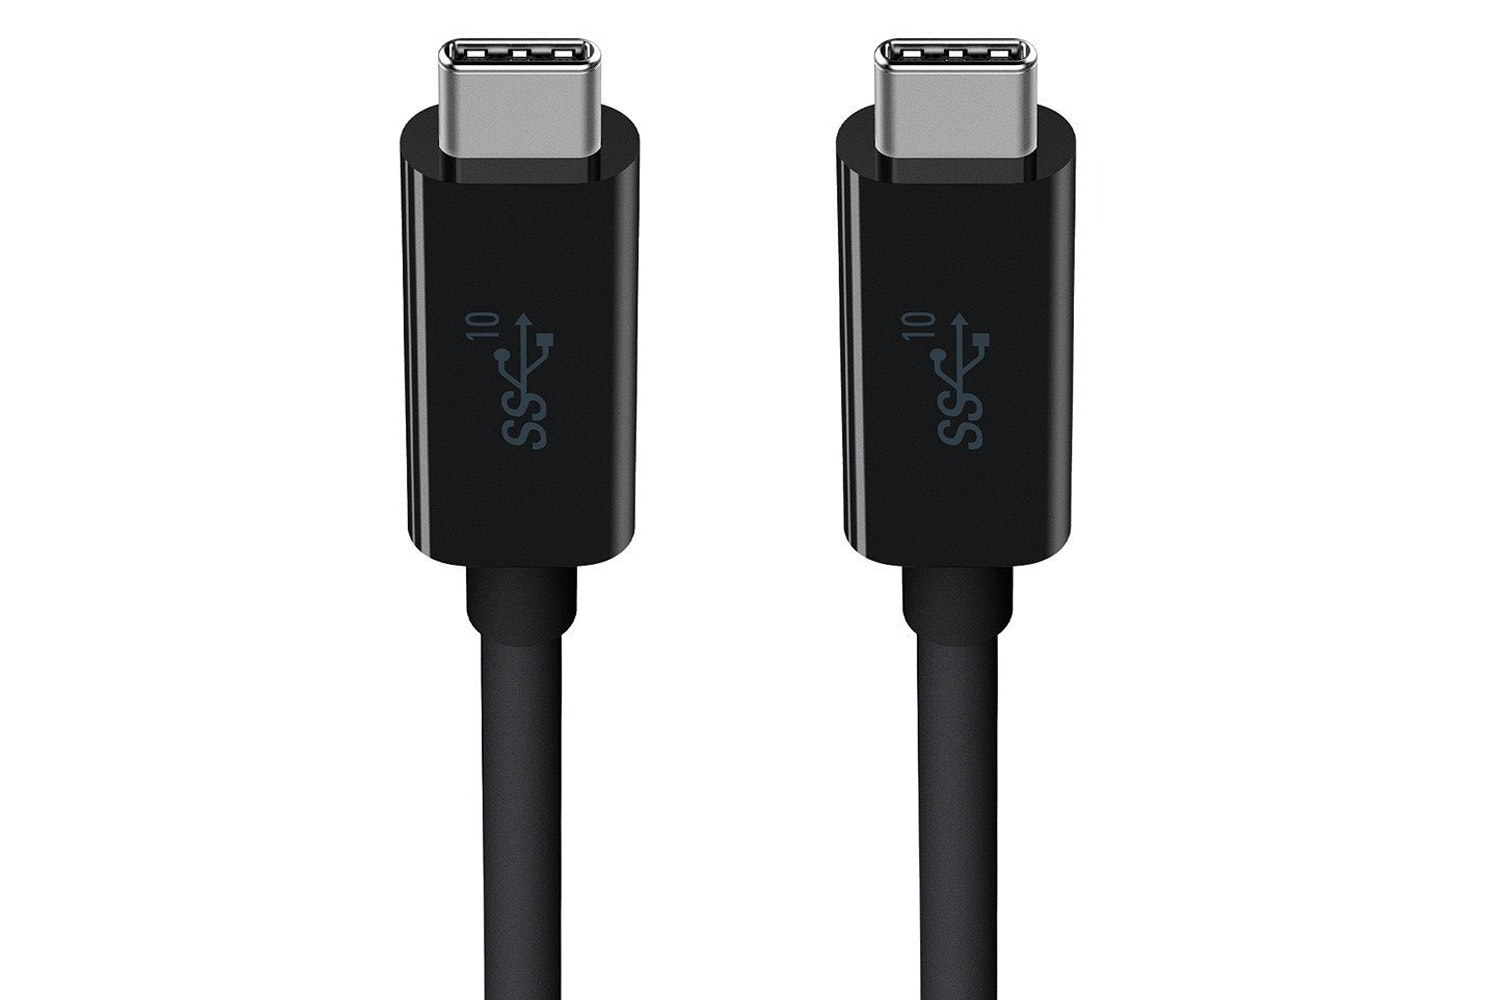 Belkin USB-C to USB-C Cable | 1m